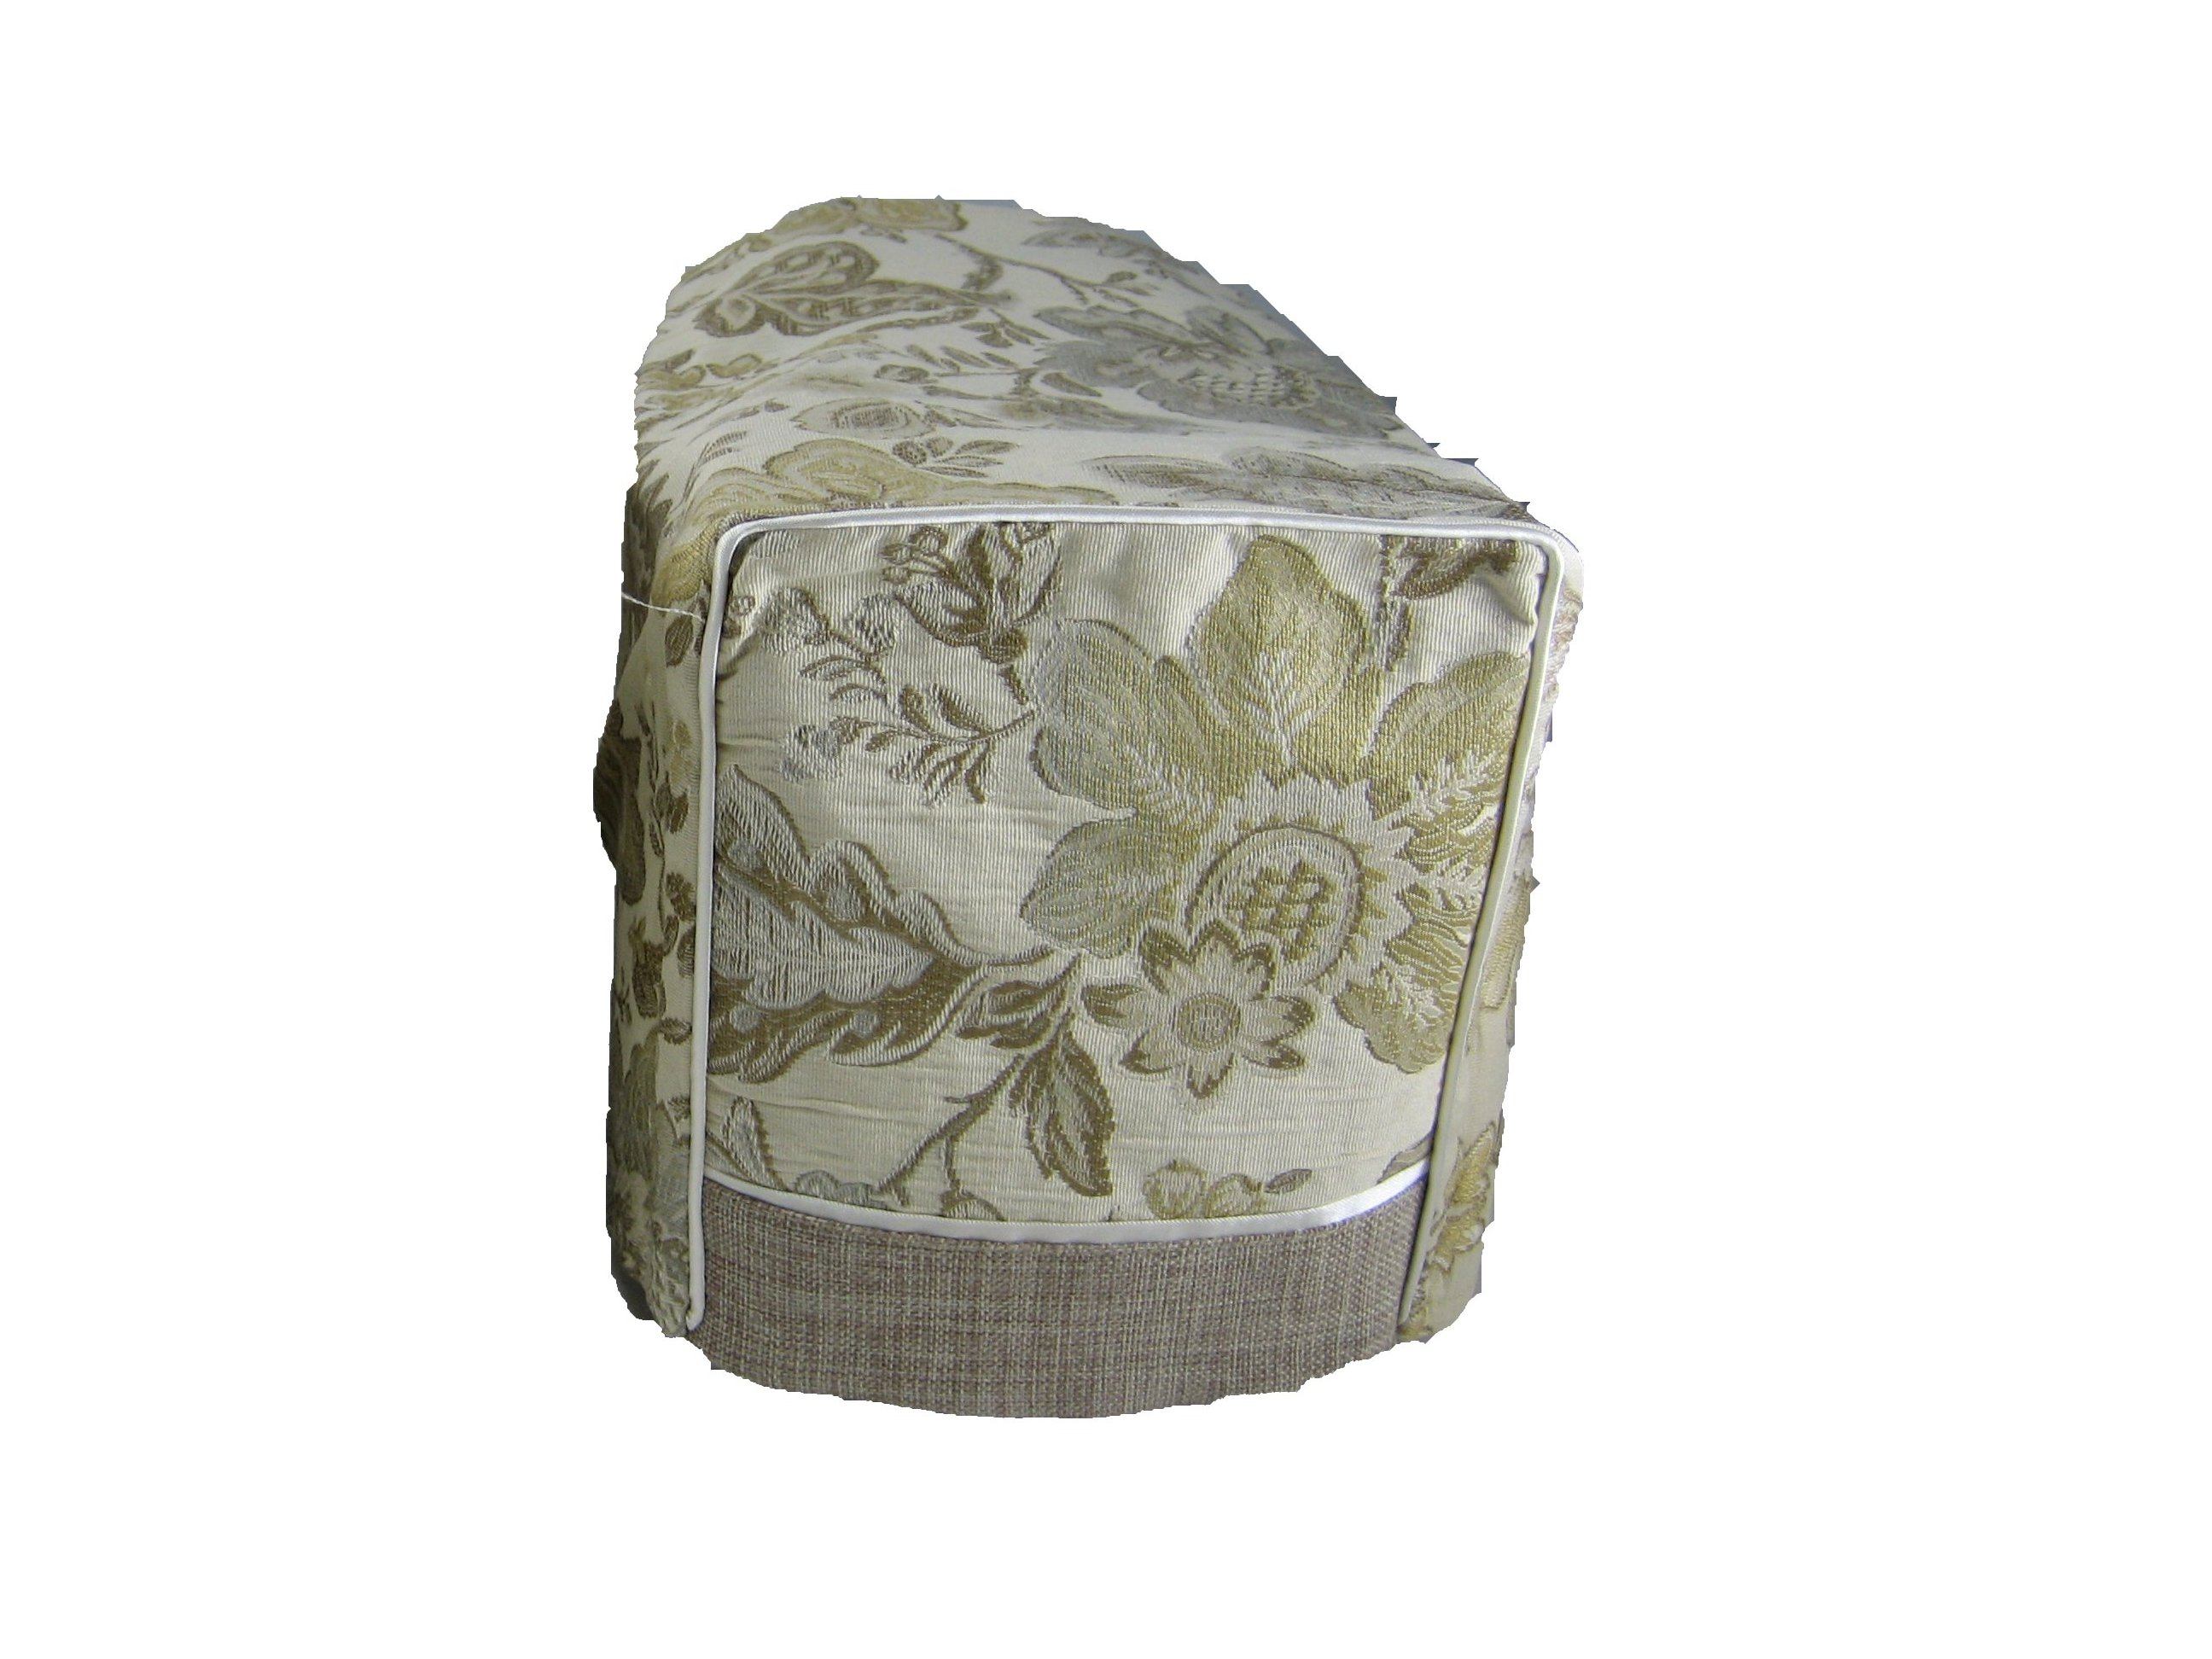 Anastasia arm cap or chair back decorative floral